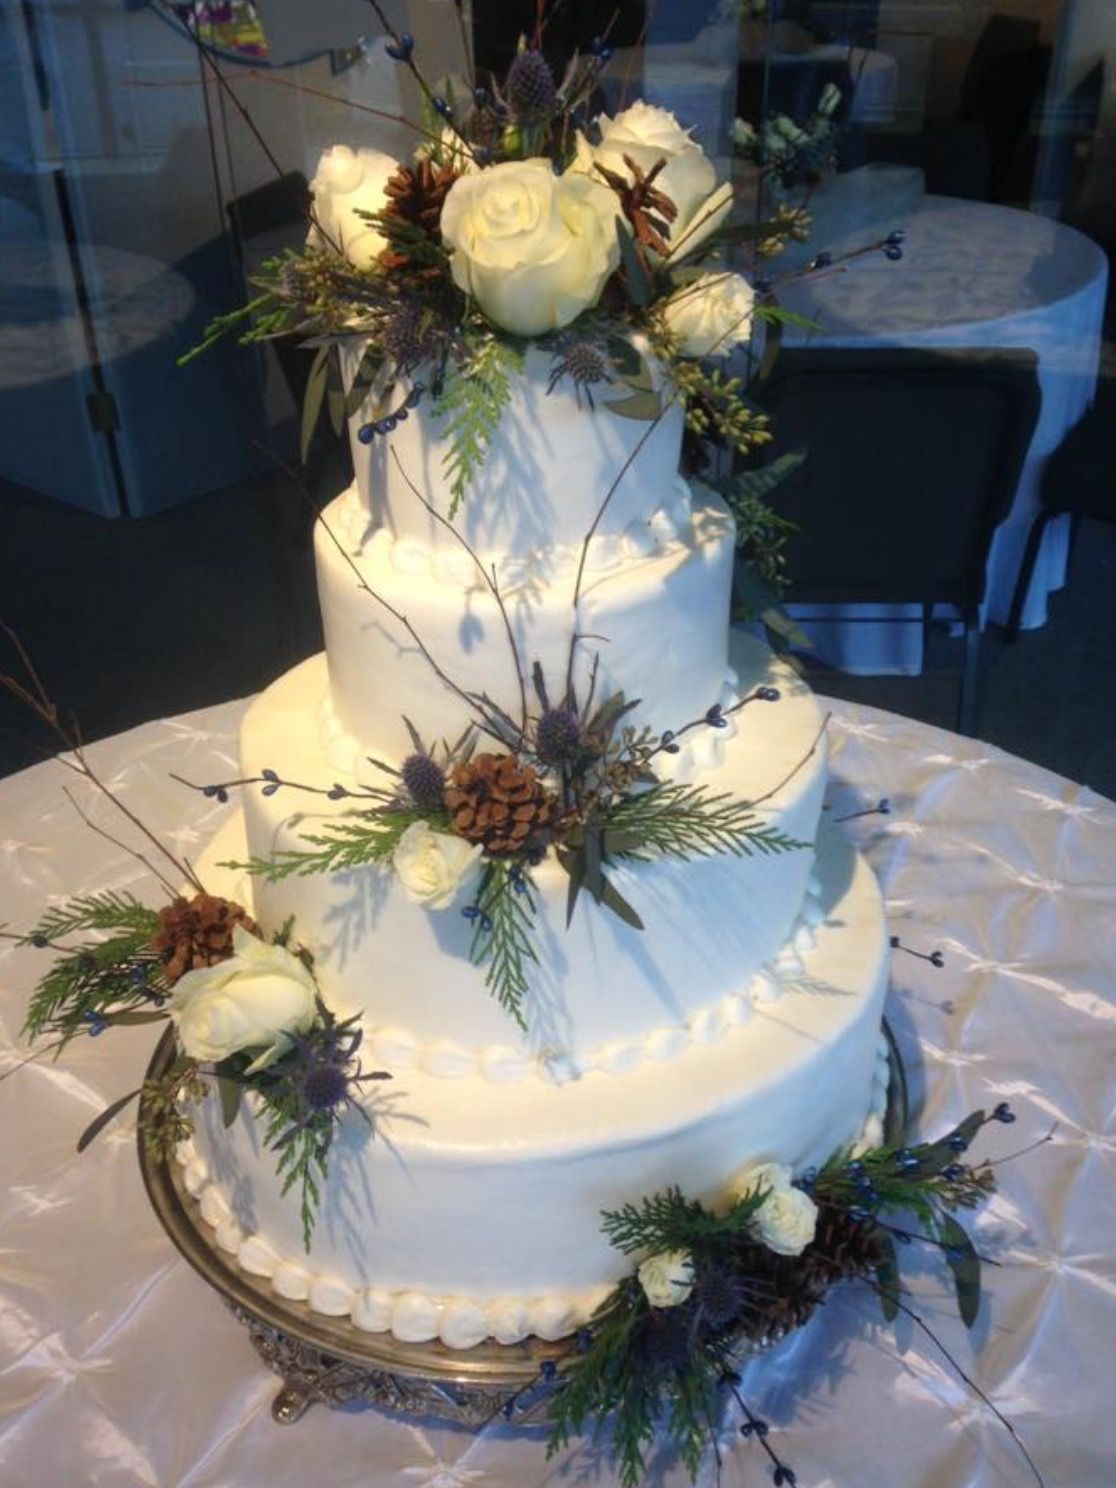 Simple smooth iced cake adorned with berries, pine cones and winter greens.cake designed by Flowers by the Bunch